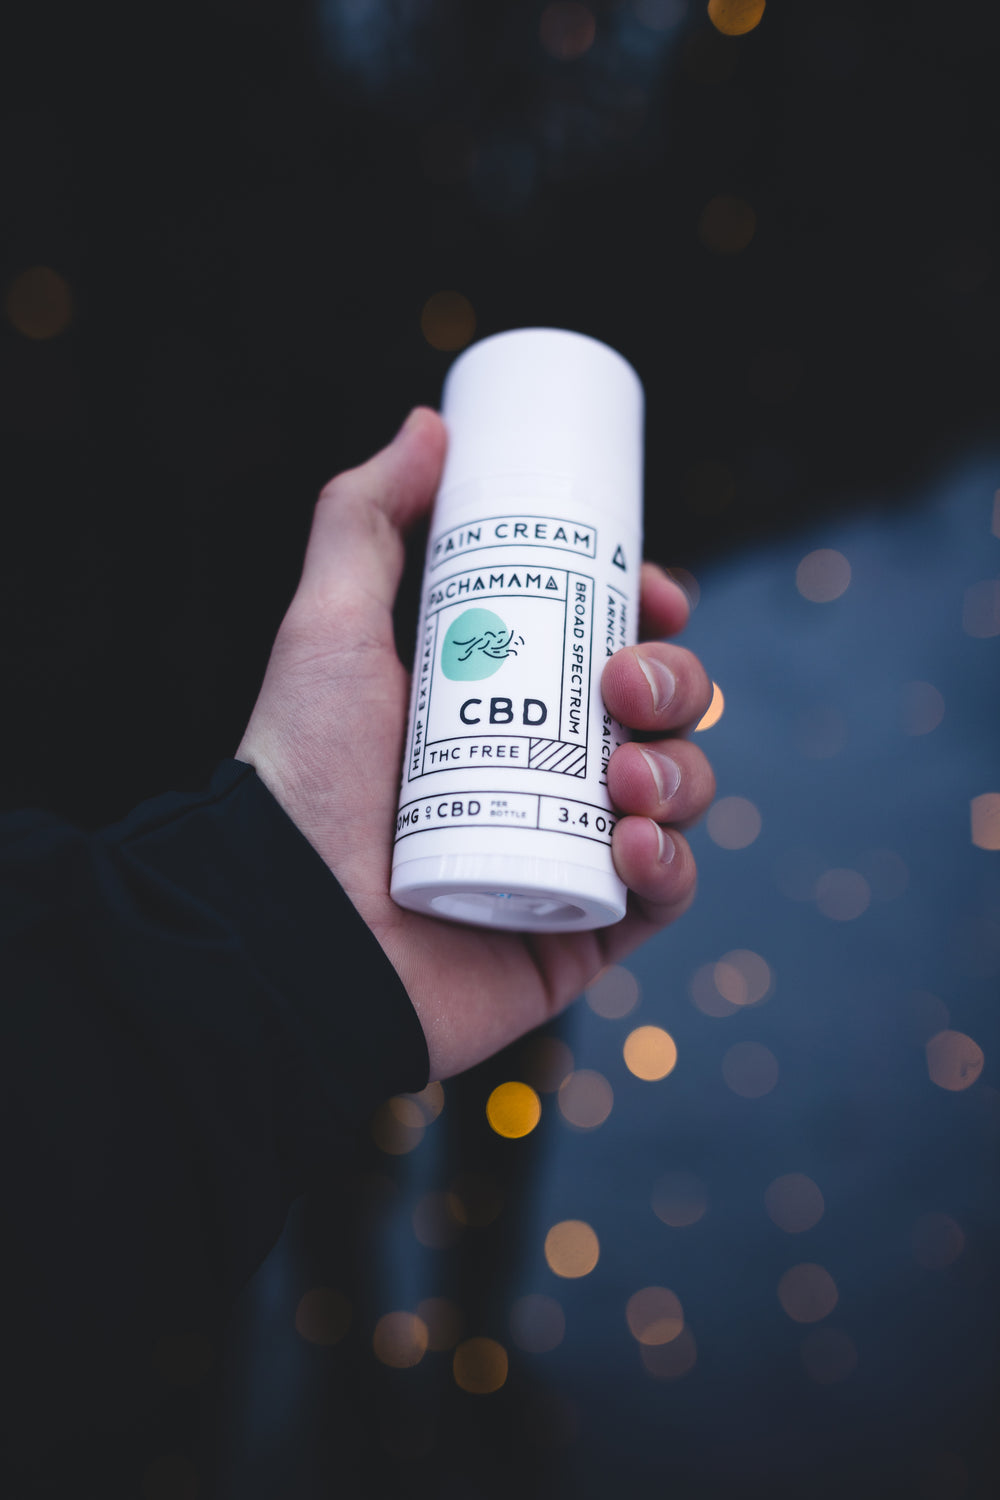 ICY RELIEF CBD Cream